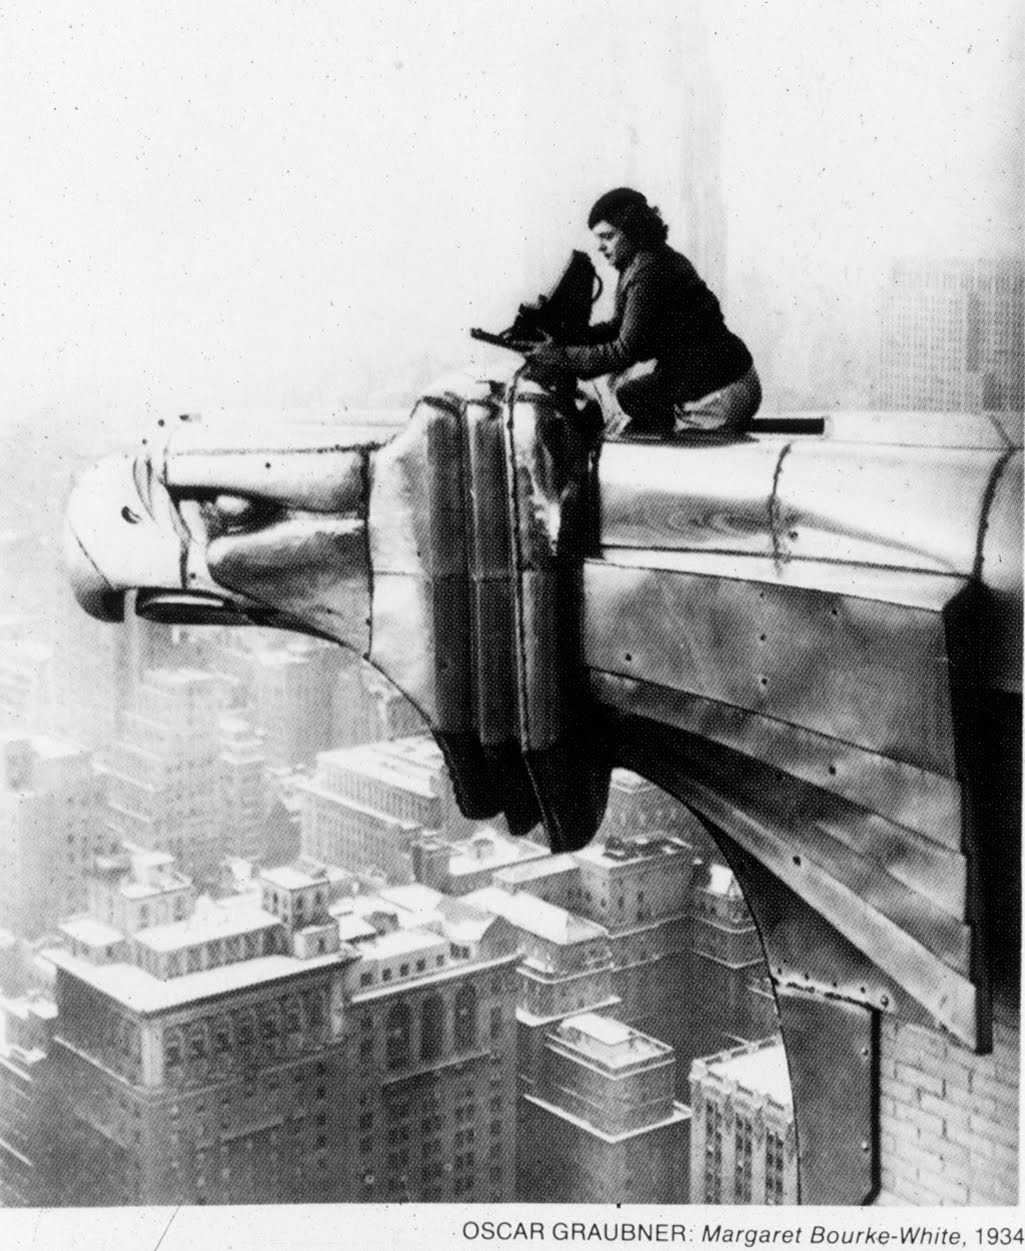 photographic essays margaret bourke-white As a photographer for life and fortune magazines, margaret bourke-white traveled to russia in the 1930s, photographed the nazi takeover of czechoslovakia in 1938, and.